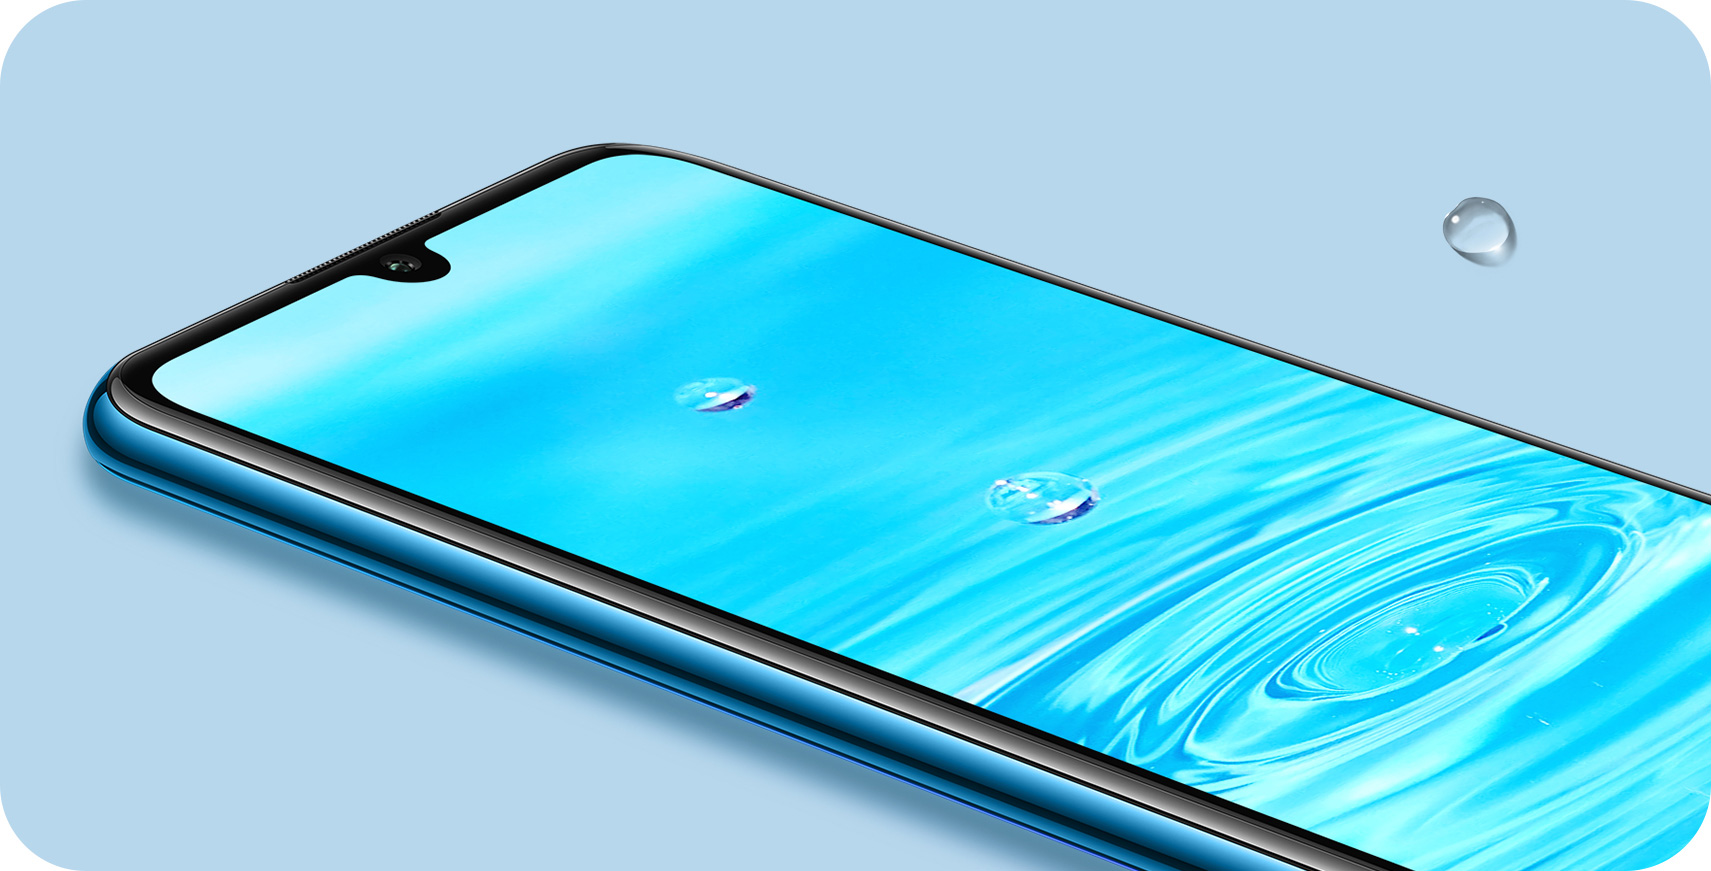 HUAWEI P30 lite, 3D Curved Glass Design, 3D Selfie Camera | HUAWEI